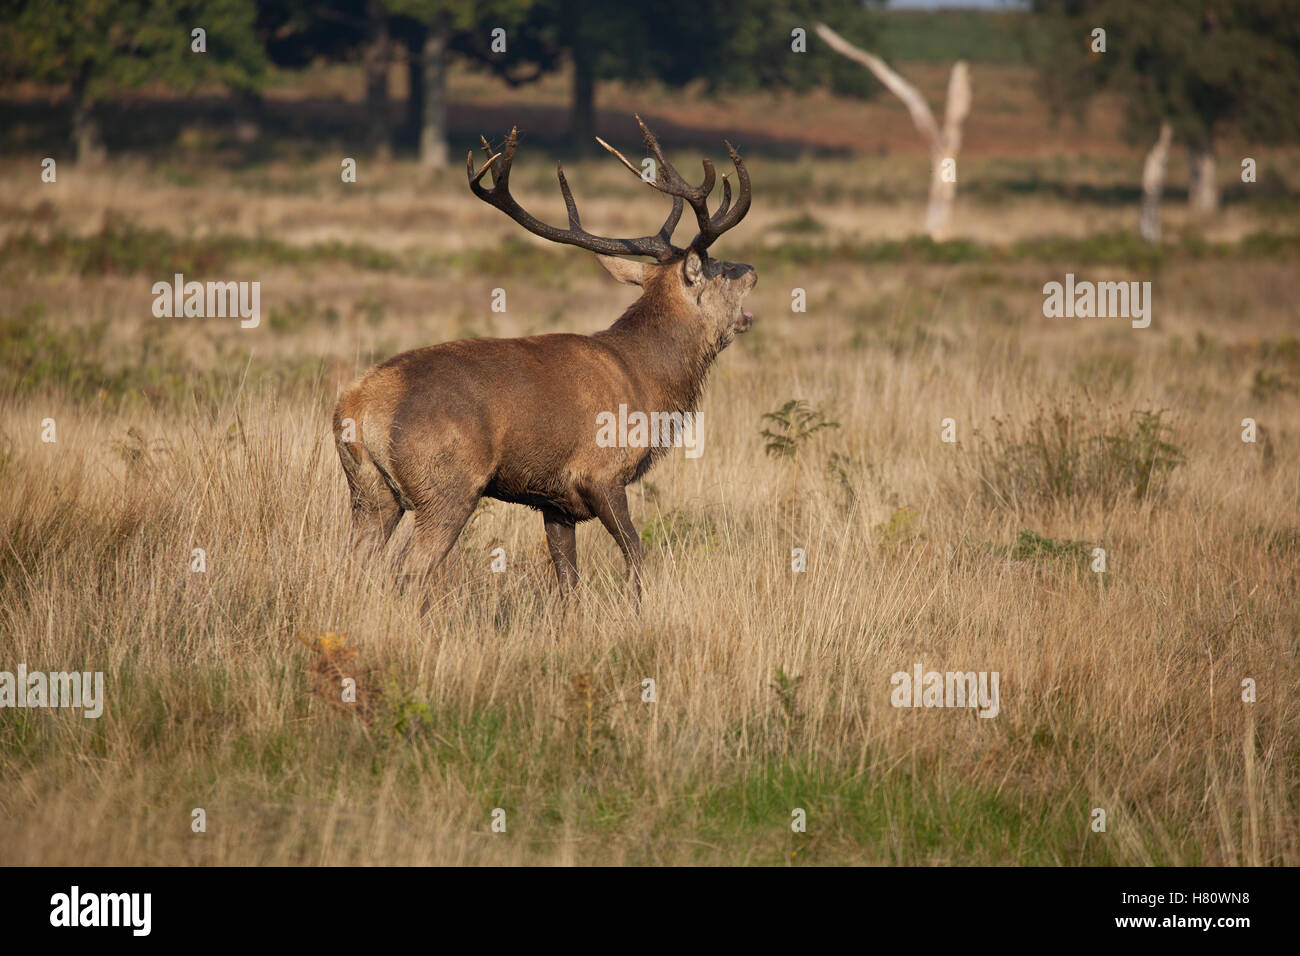 Red deers in Richmond Park during the rut season, London, UK Stock Photo